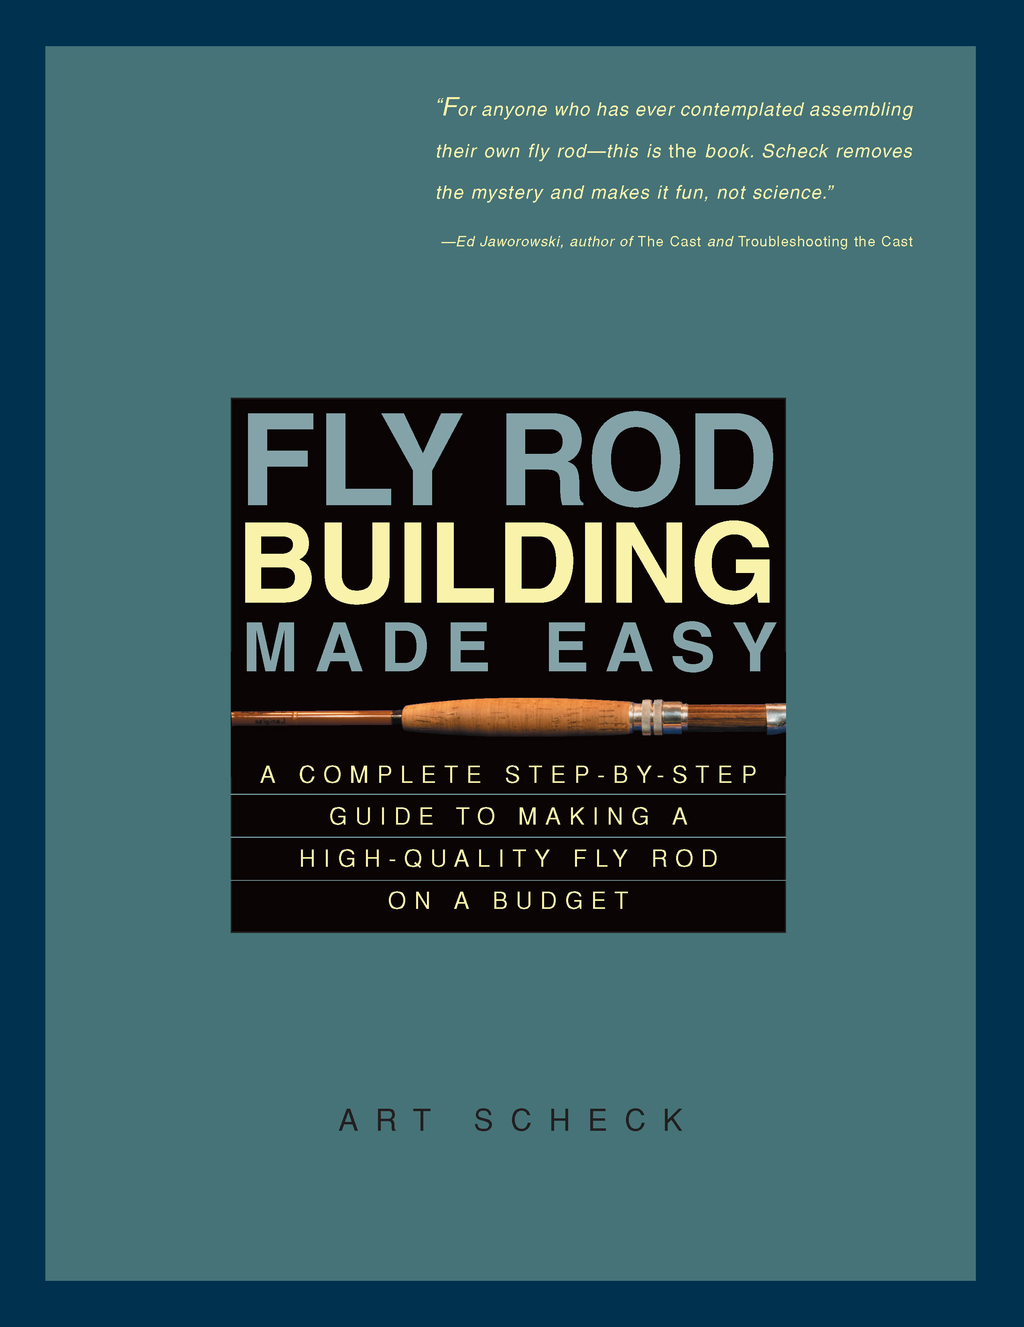 Fly Rod Building Made Easy: A Complete Step-by-Step Guide to Making a High-Quality Fly Rod on a Budget By: Art Scheck